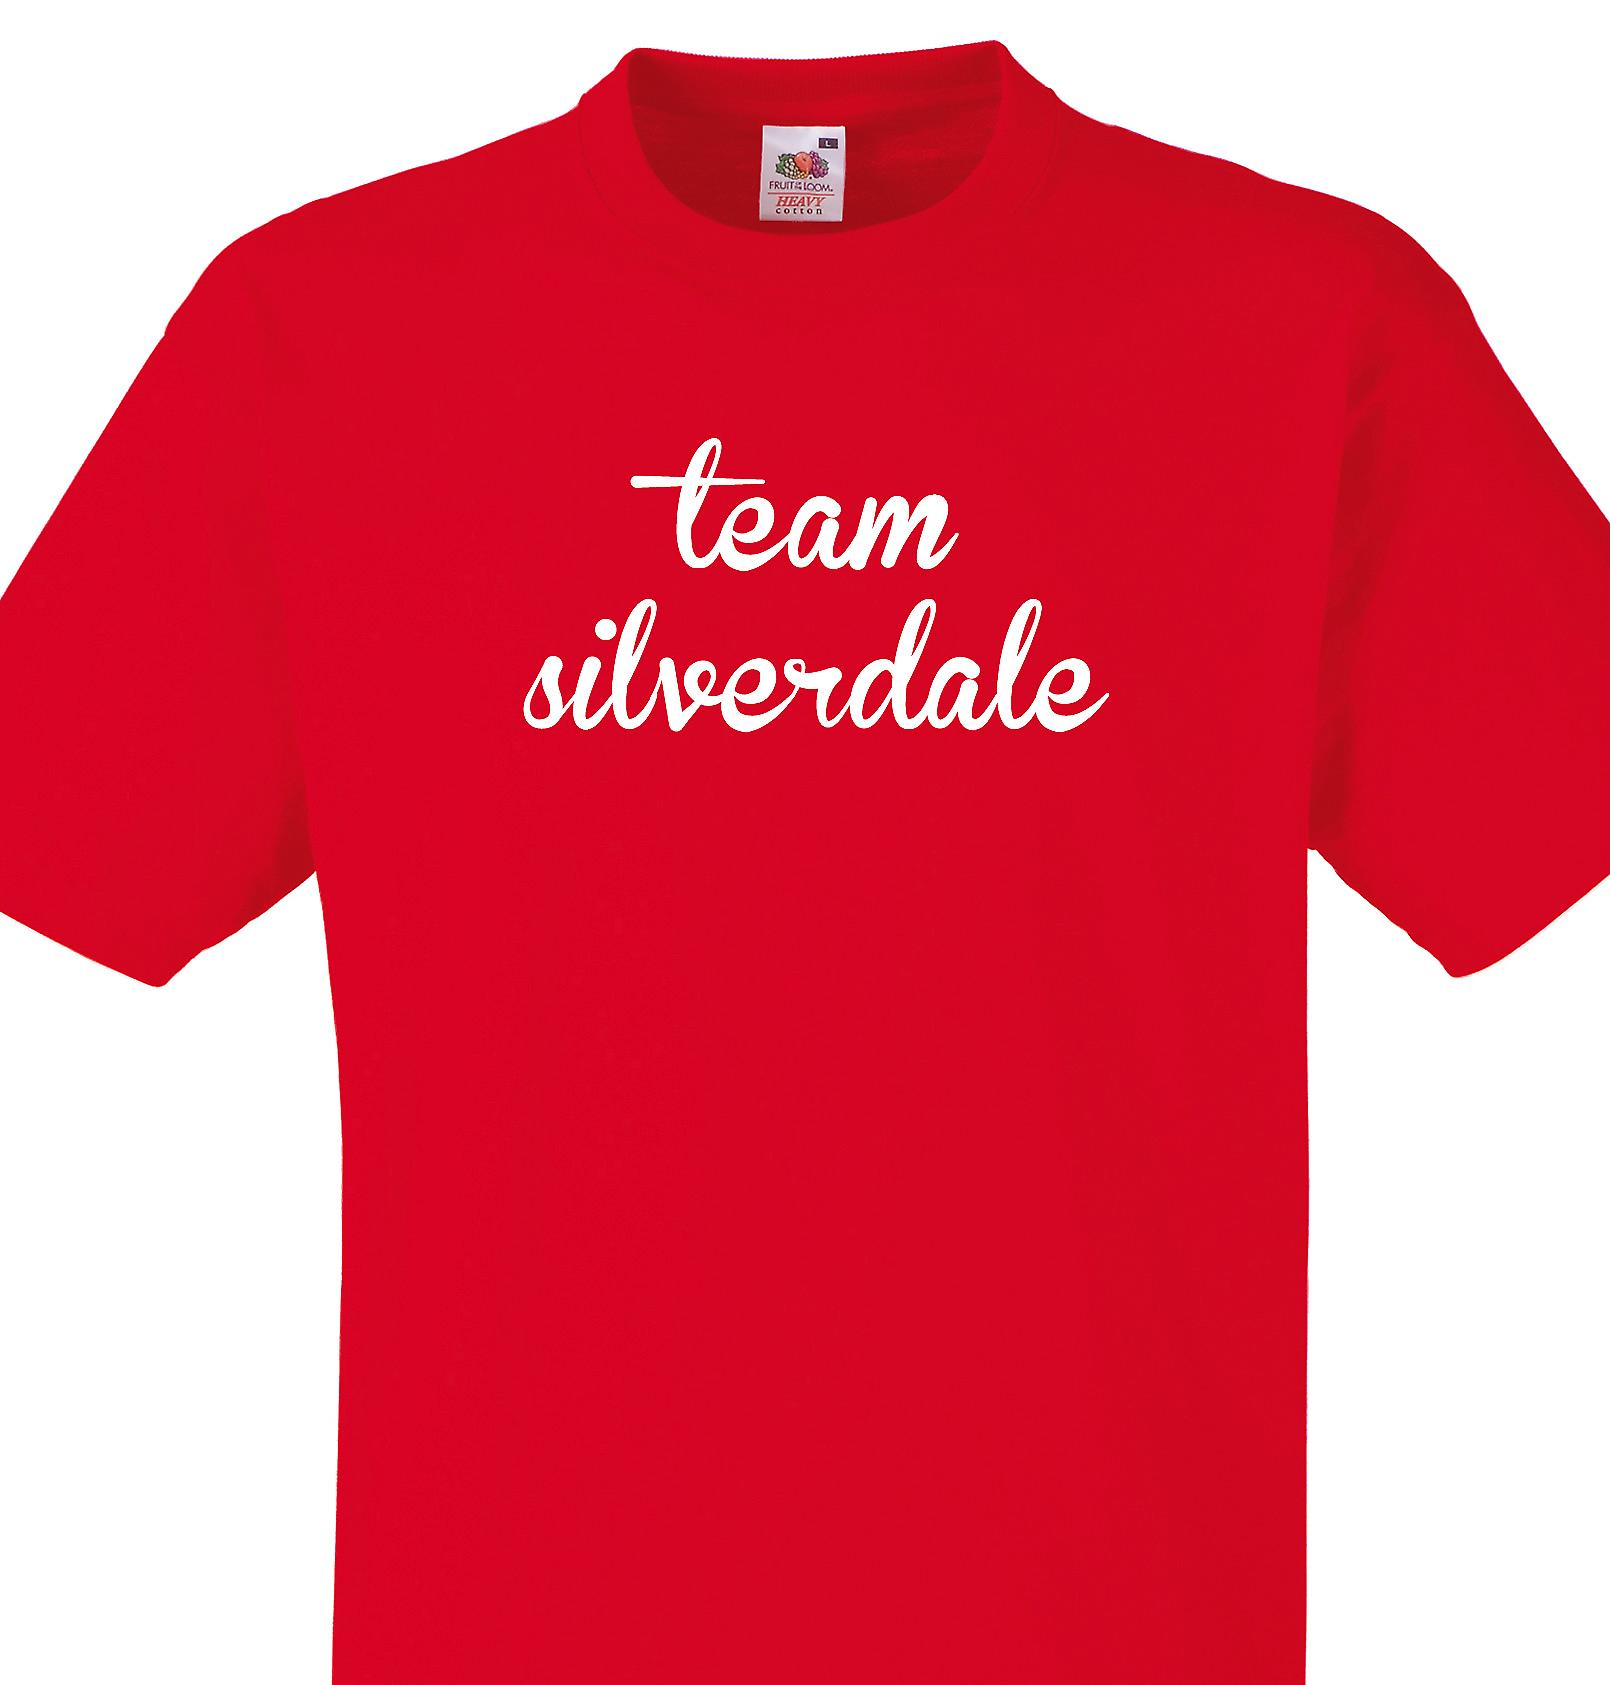 Team Silverdale Red T shirt